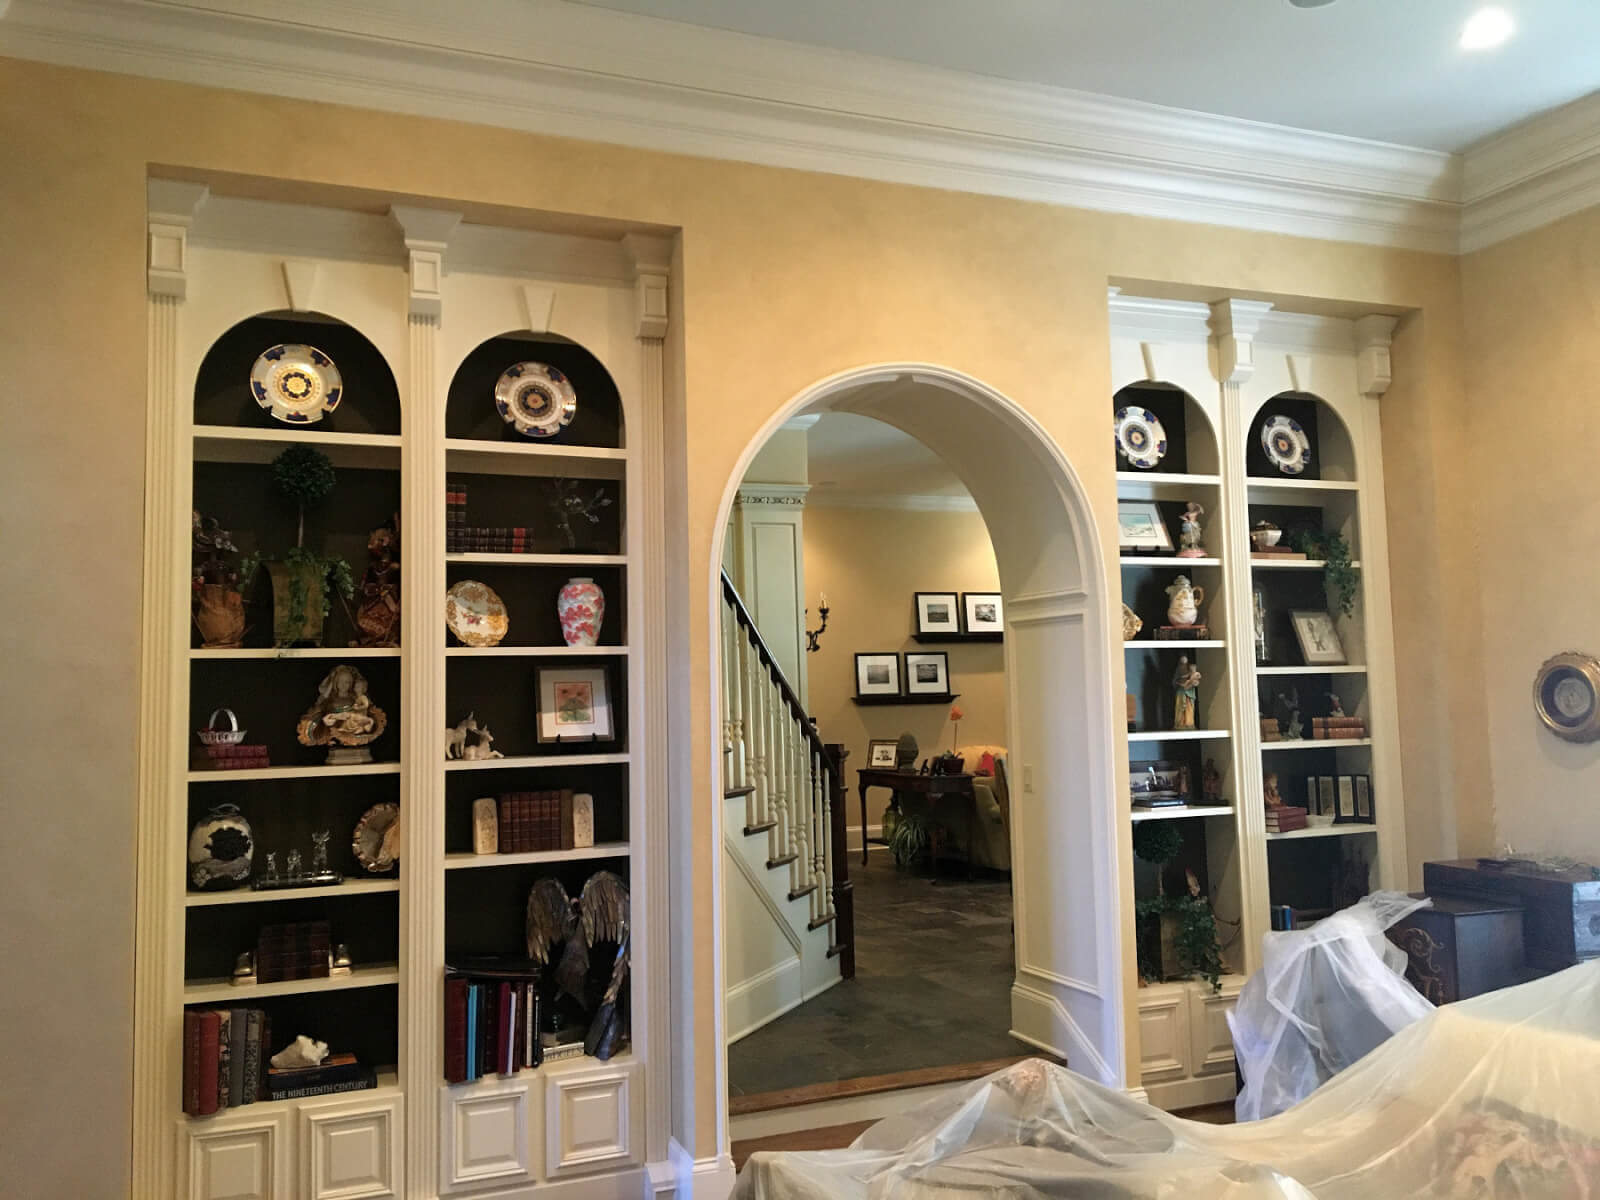 '90s home with outdated bookshelves and arched doorway